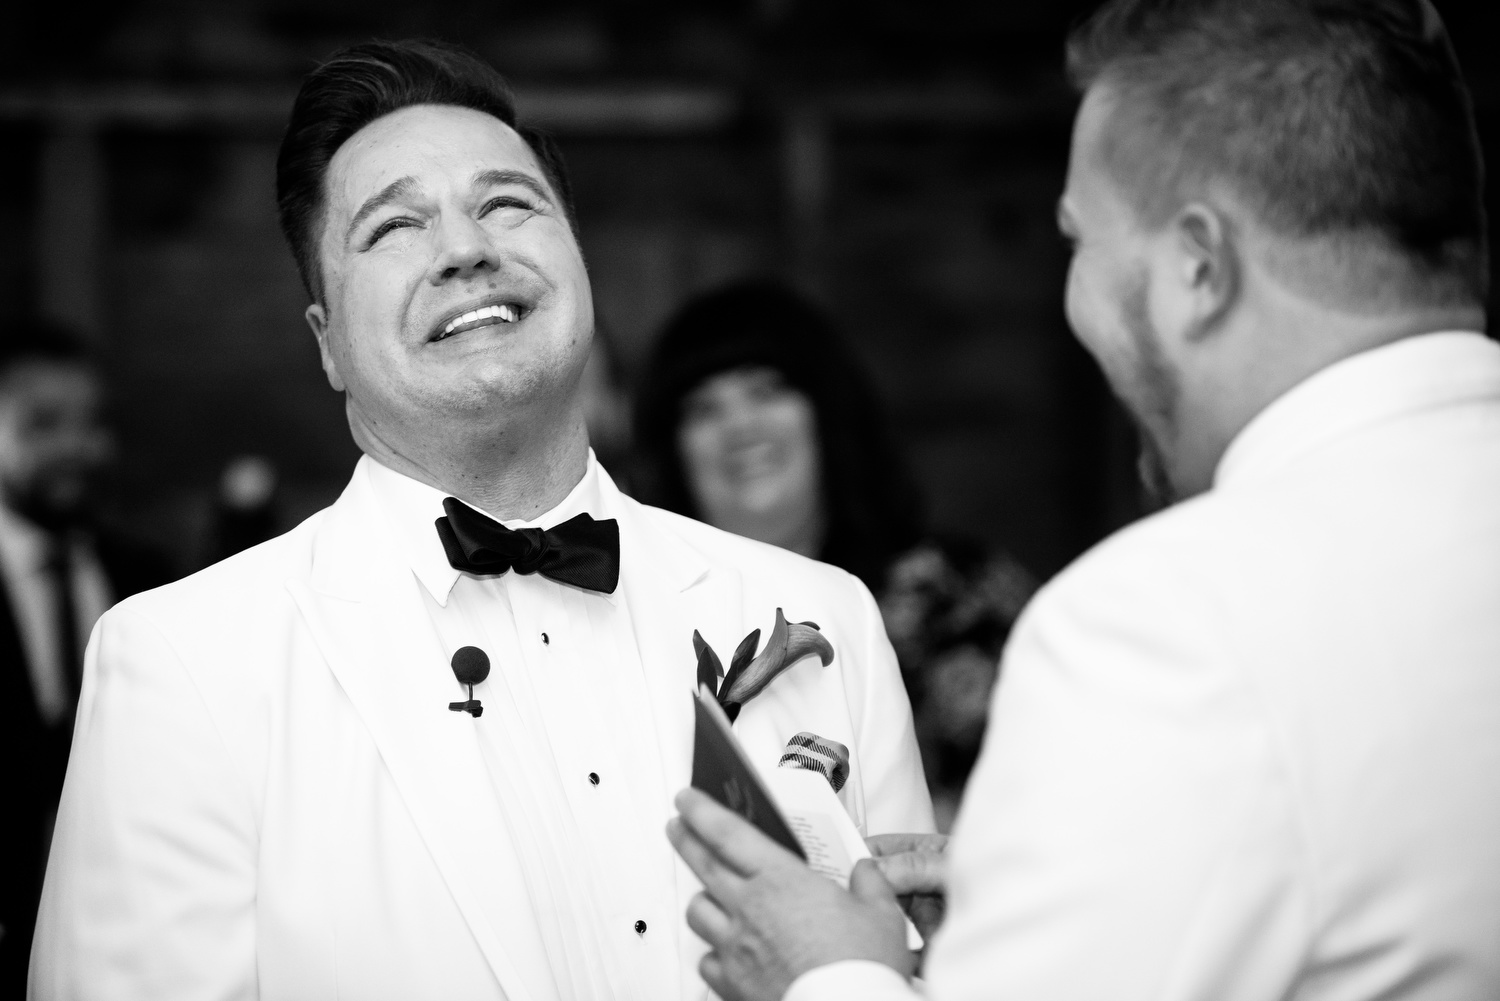 Grooms laugh during their wedding ceremony at Heritage Prairie Farm.